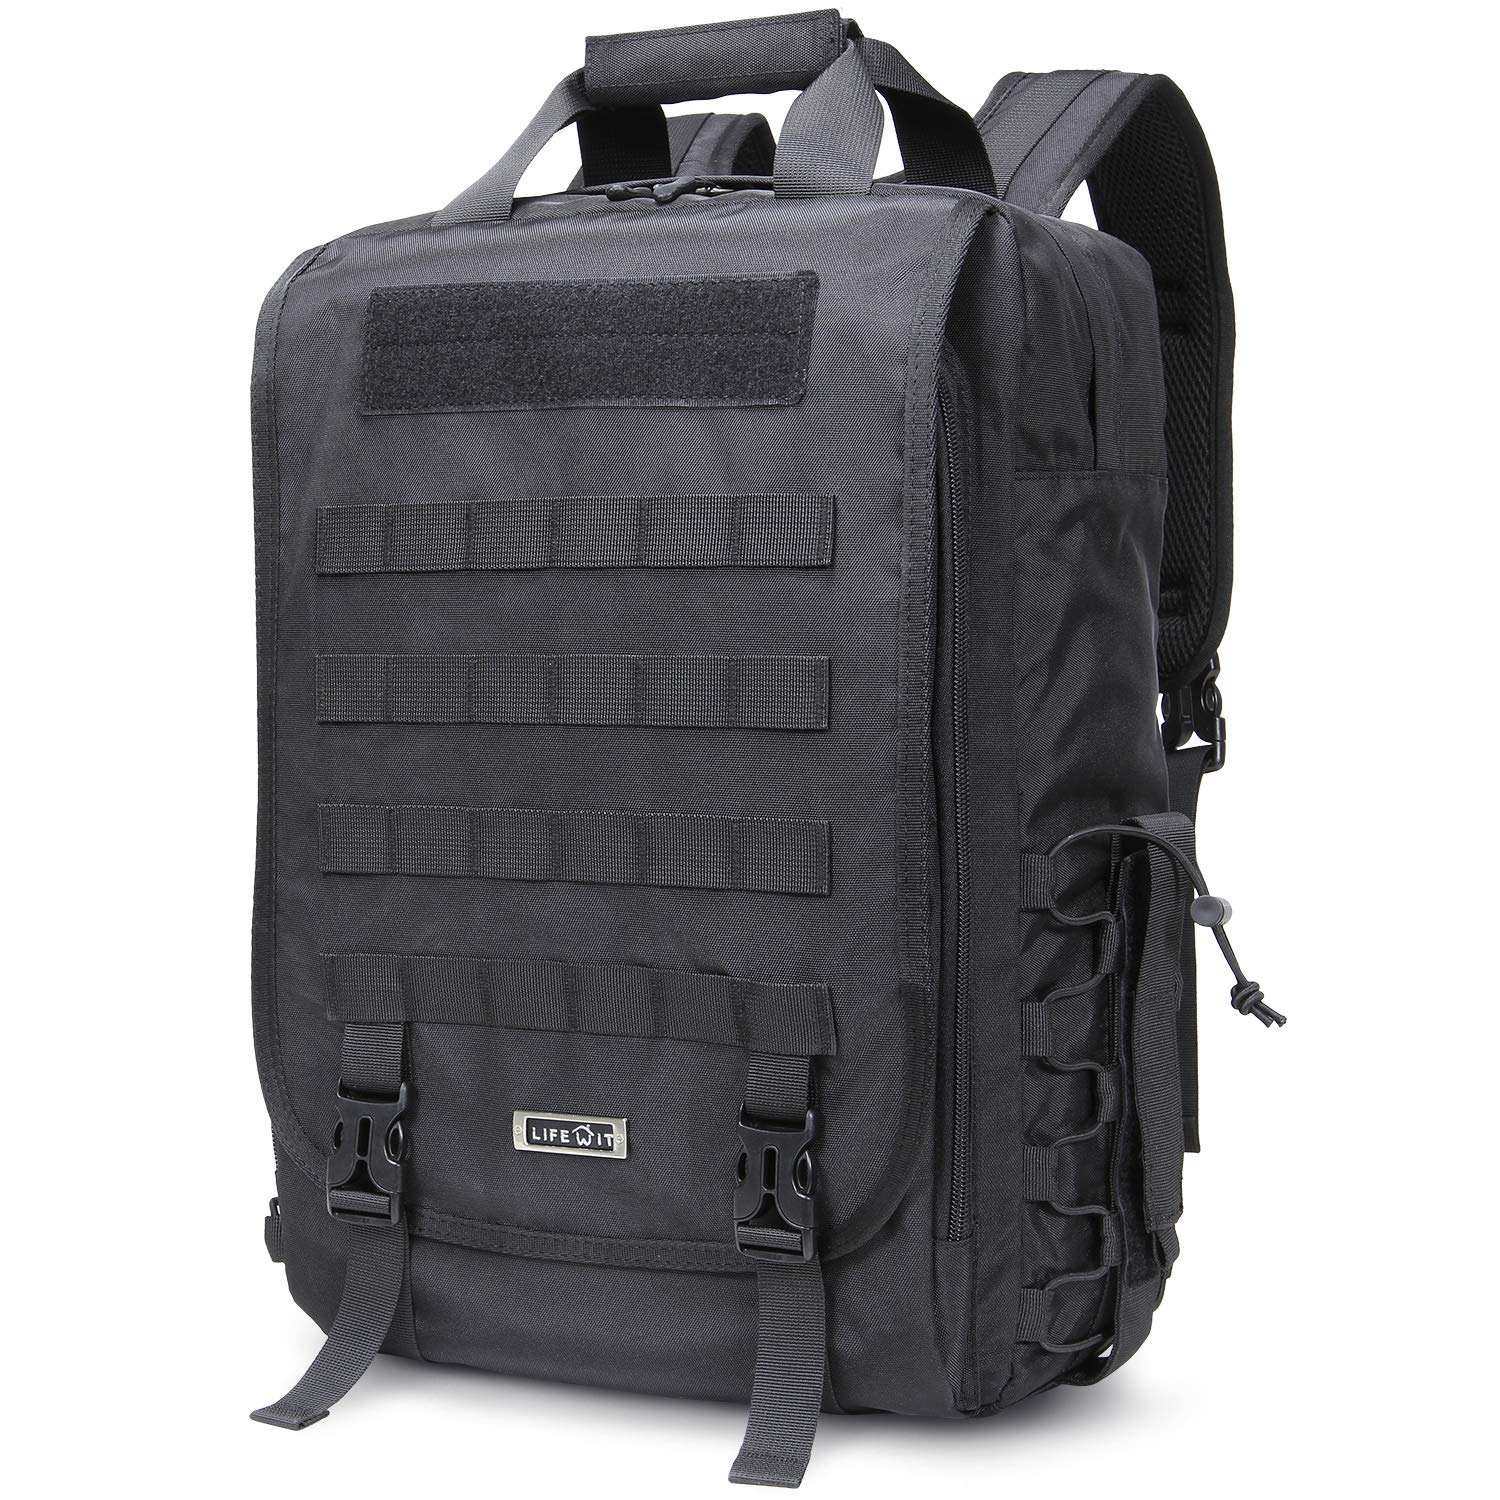 Lifewit Military Tactical Laptop Backpack 3 Day Assault Pack Bug Out Bag  Army Molle Rucksacks for ... 0e7eff34c250c